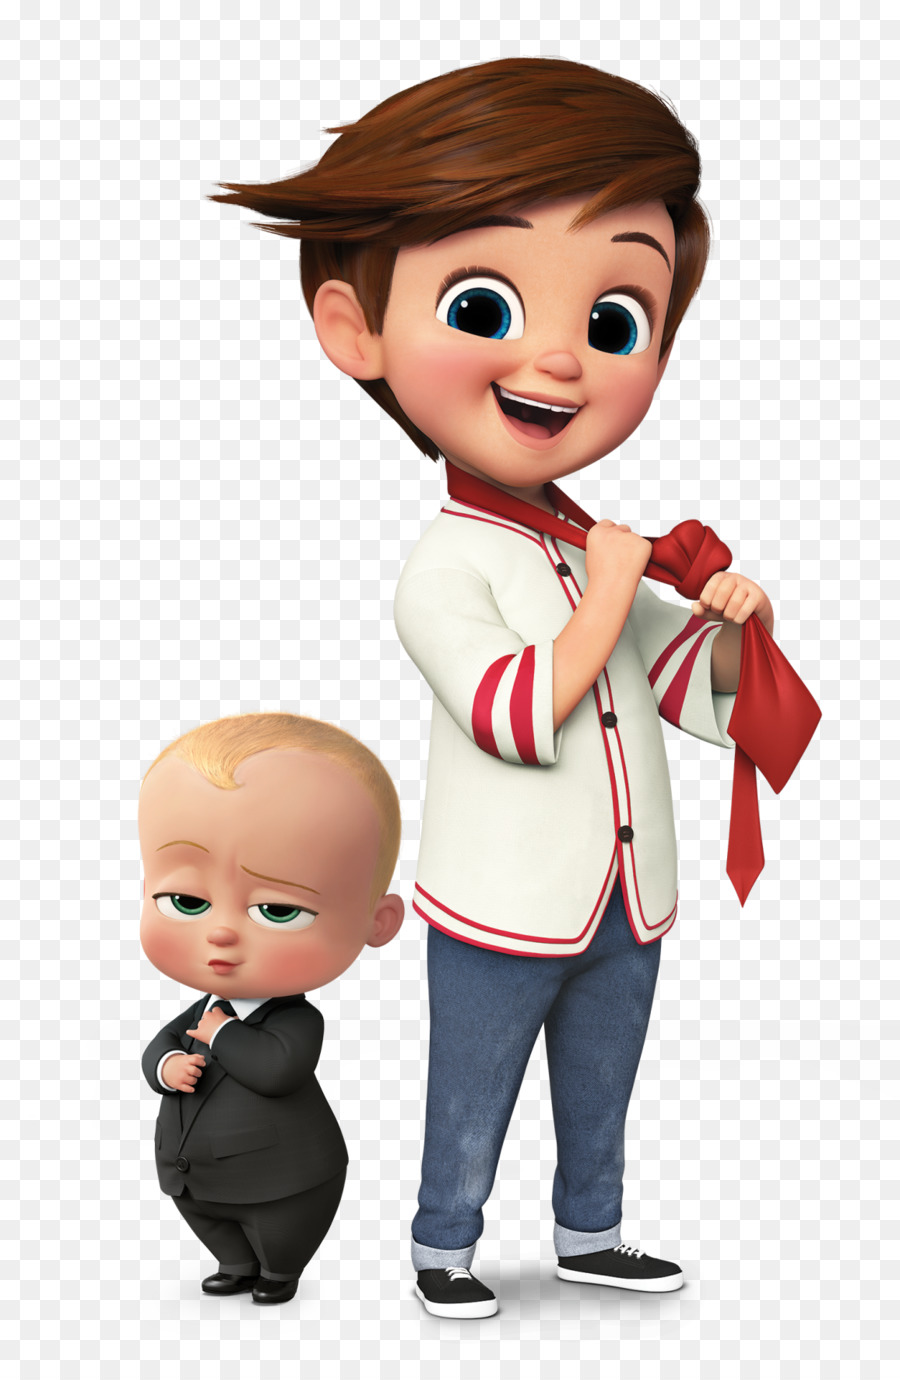 The Boss Baby 2 Full Movie Free Download : movie, download, Background, Download, 1156*1762, Transparent, Download., CleanPNG, KissPNG